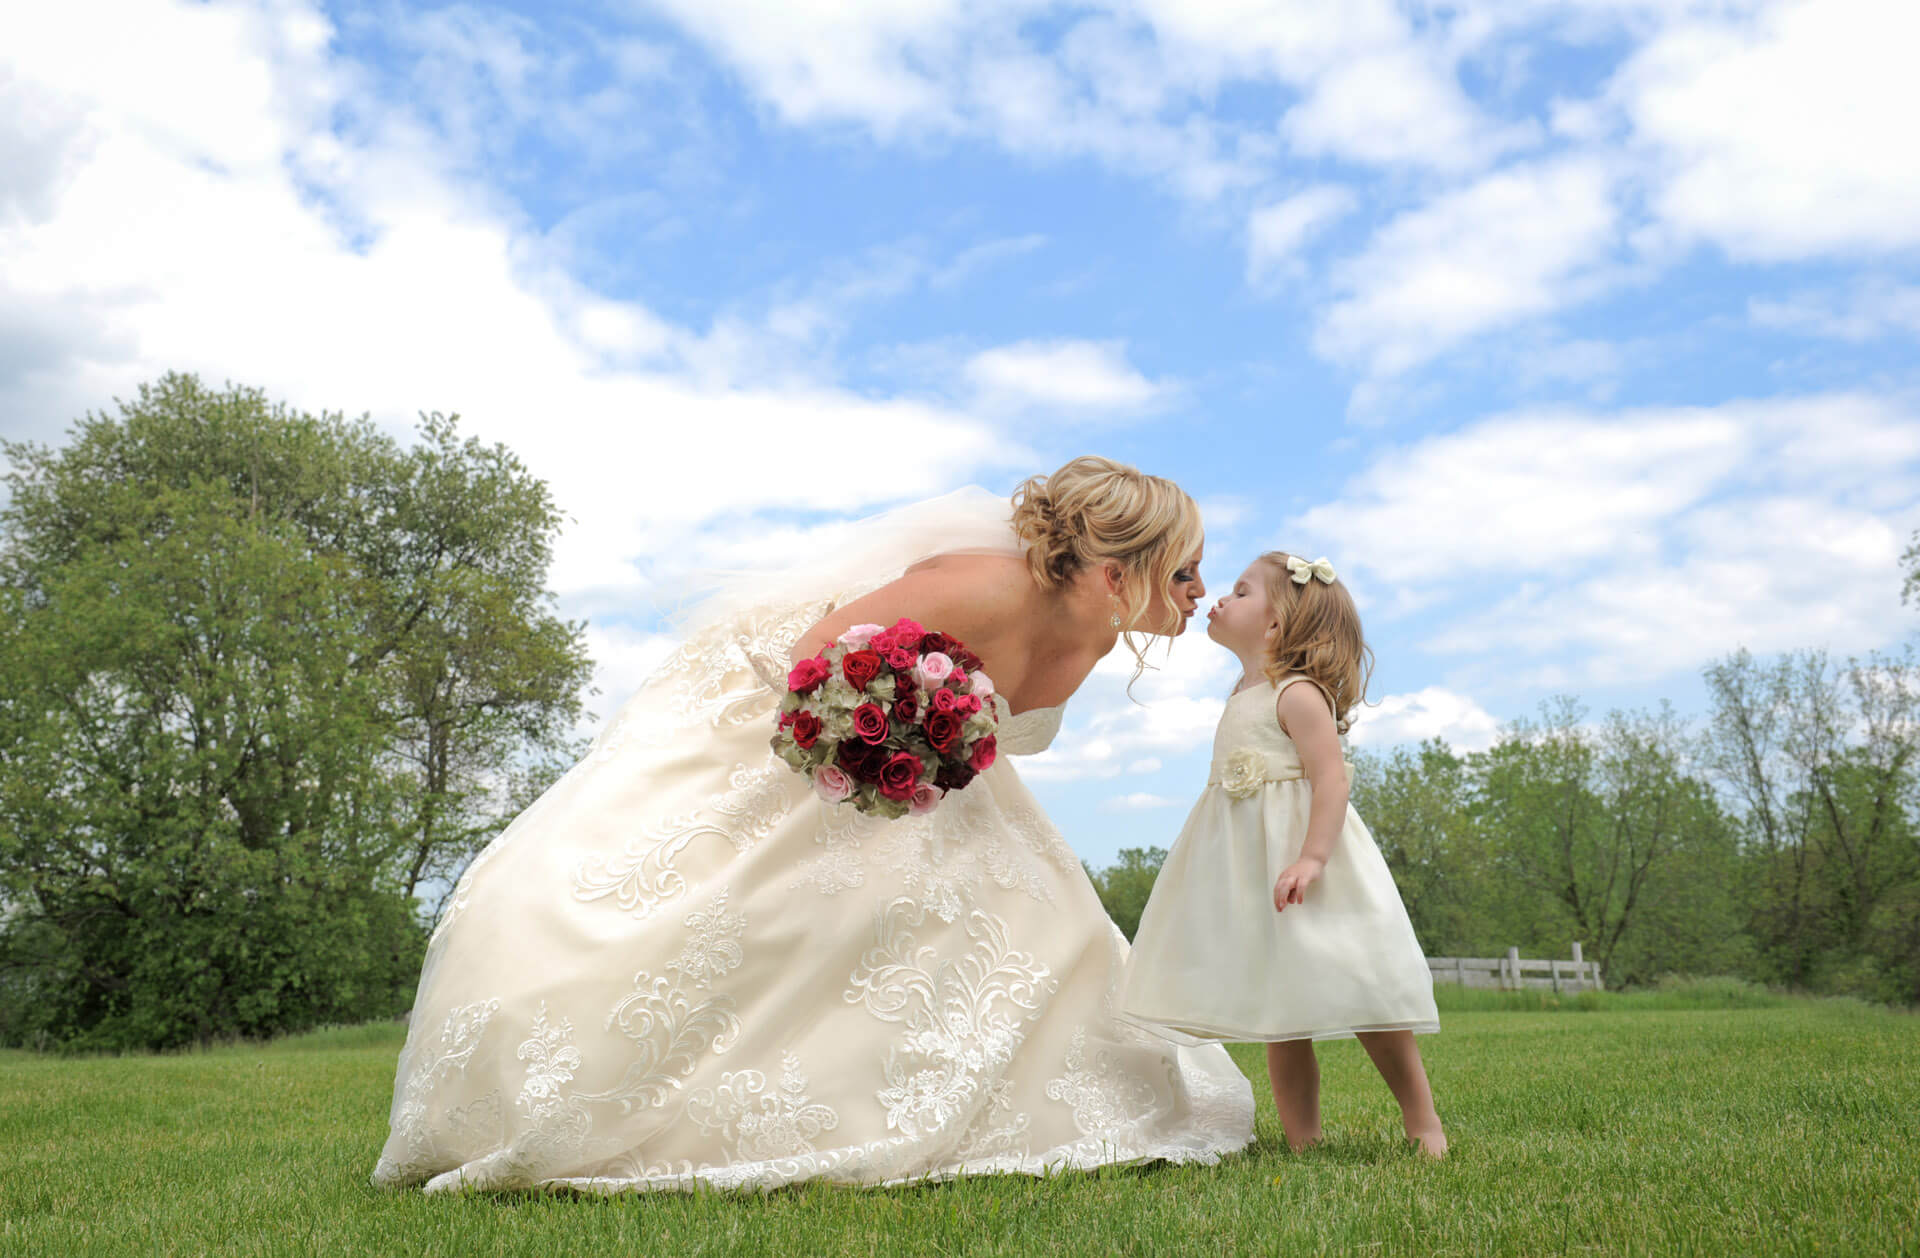 Epic Wedding portrait showing the bride getting smooched by a baby flower girl before her wedding in Troy, Michigan.